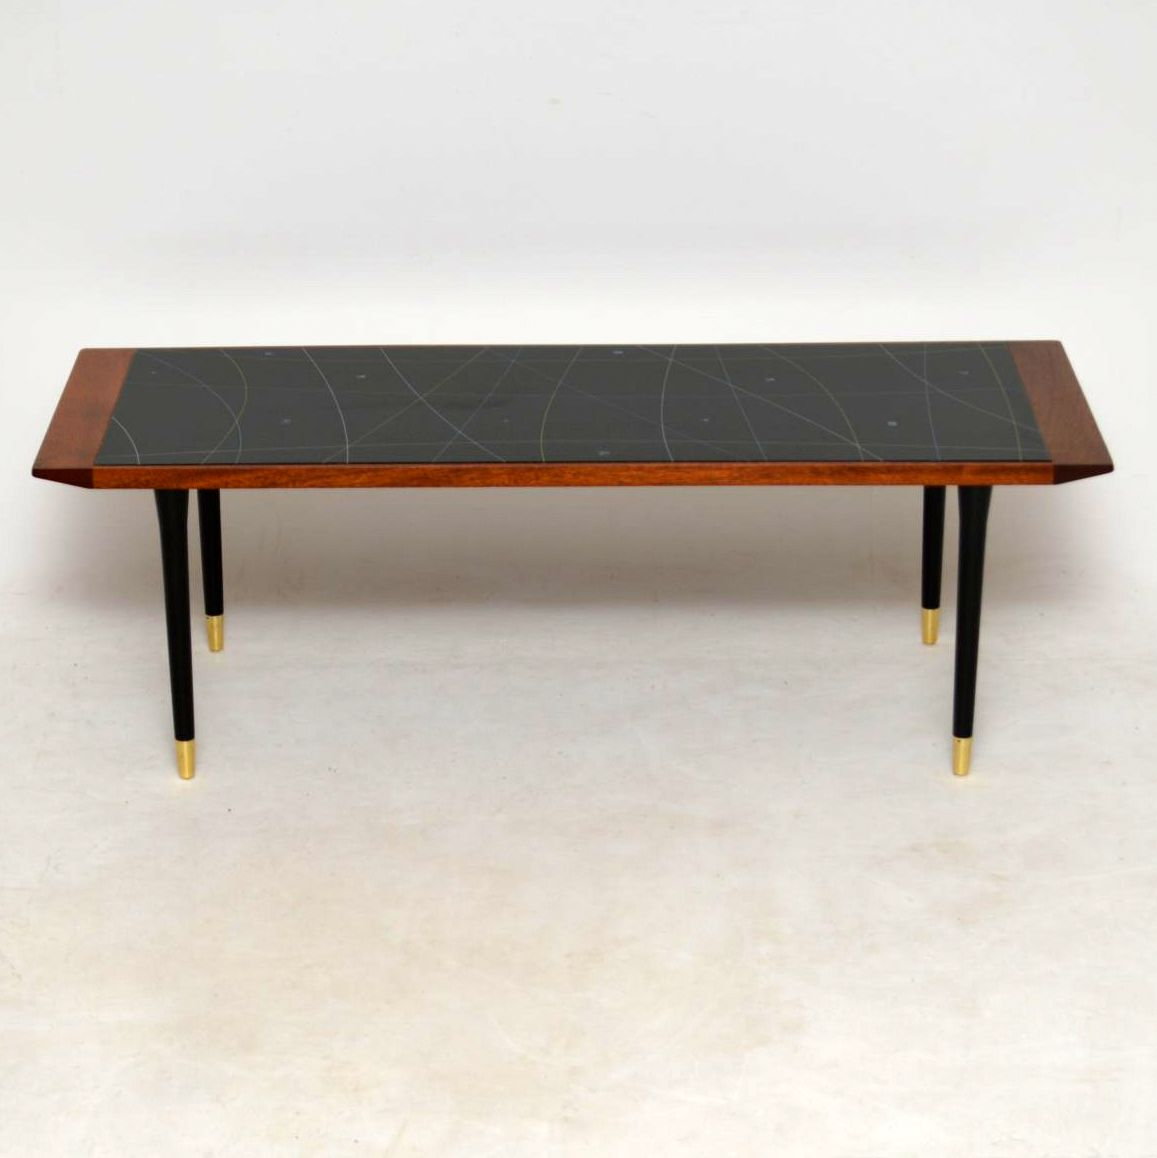 Vintage Teak Coffee Tables: 1950's Vintage Teak Glass Top Coffee Table